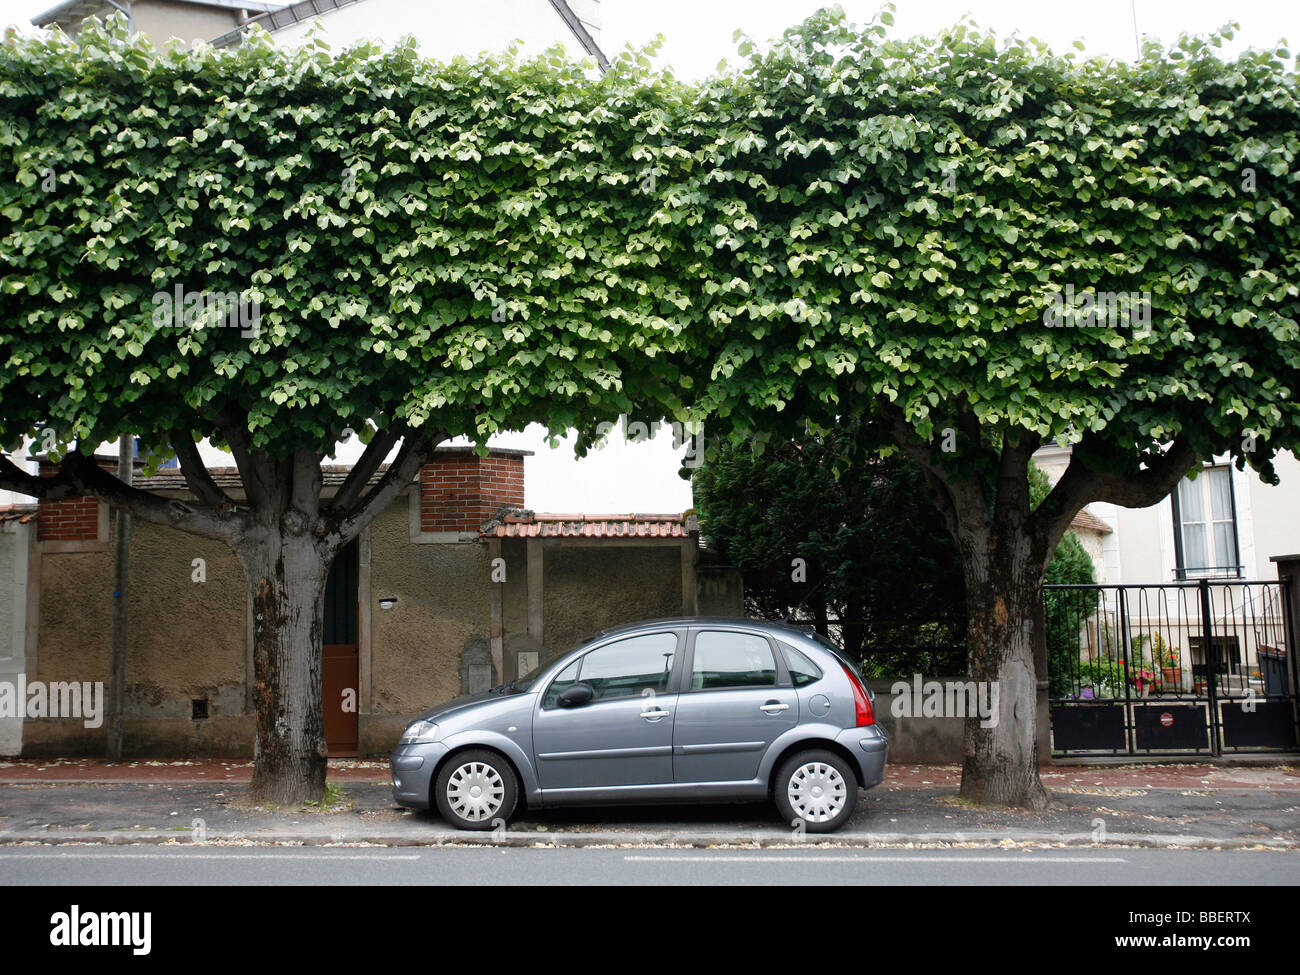 Parked car, tree lined street, Fontainebleau, France - Stock Image